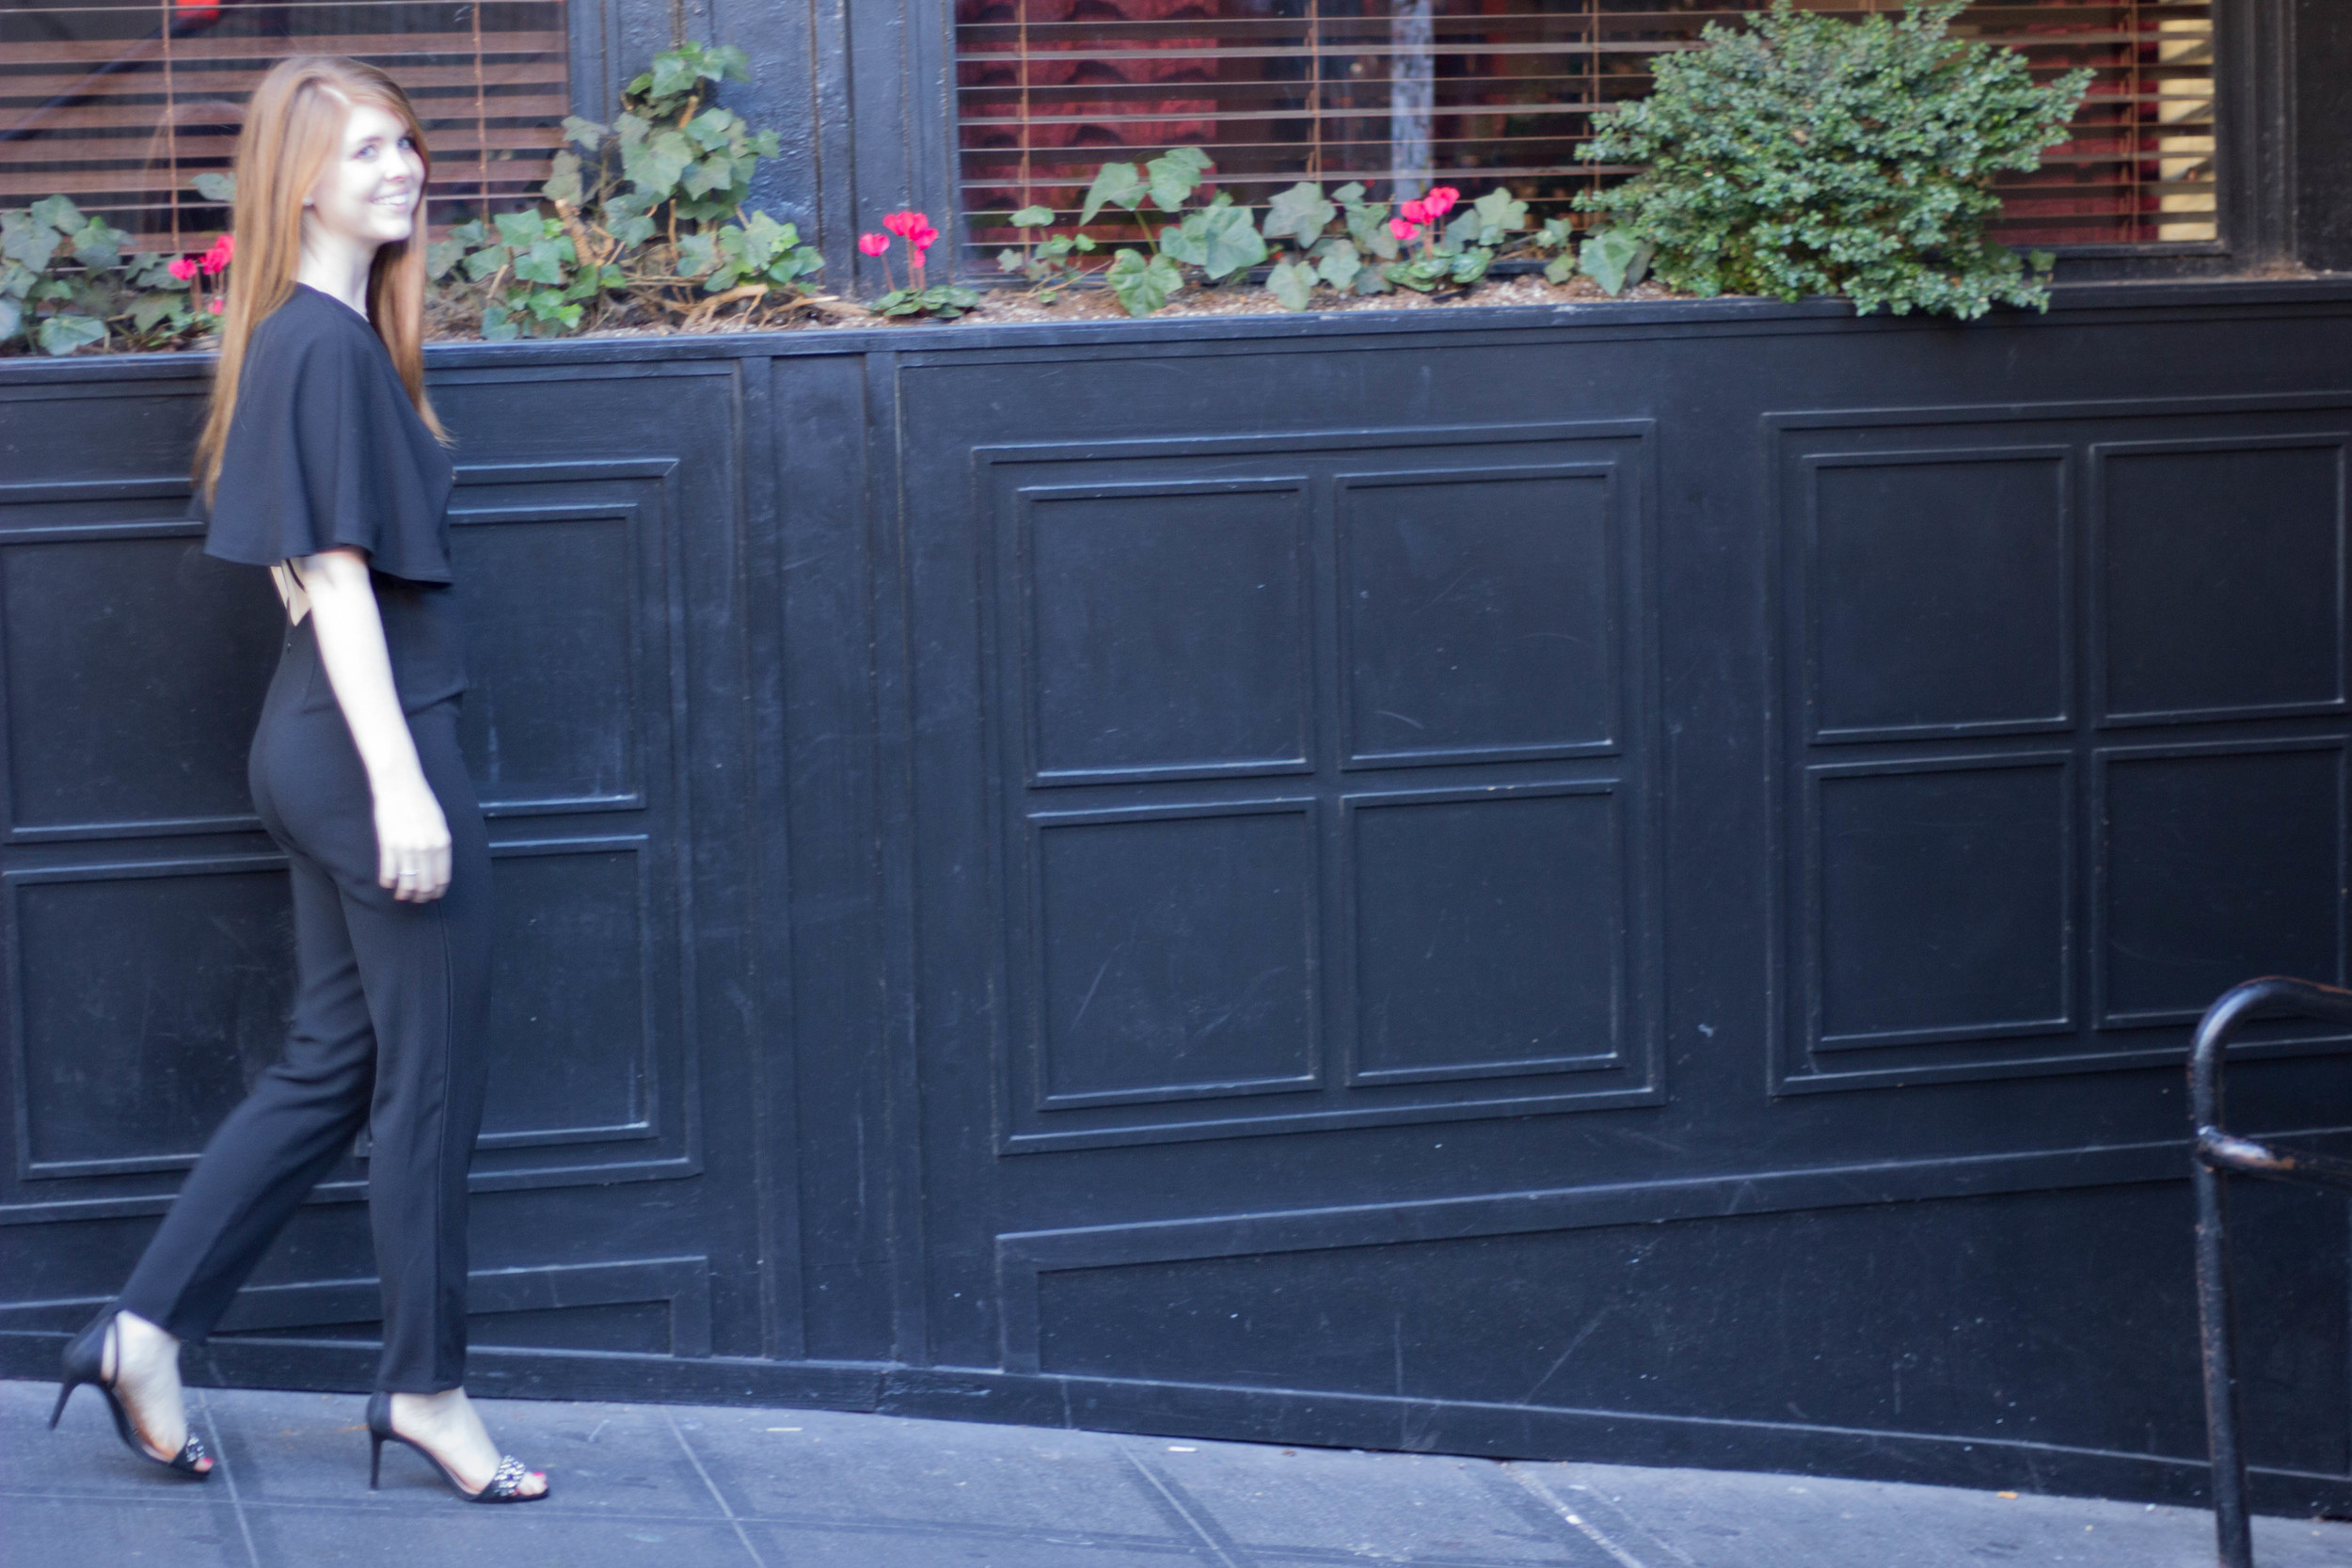 black jumpsuit, cape, tory burch brentford sandal, ghost alley, seattle, fuller's jewelry store, engagement ring store dallas